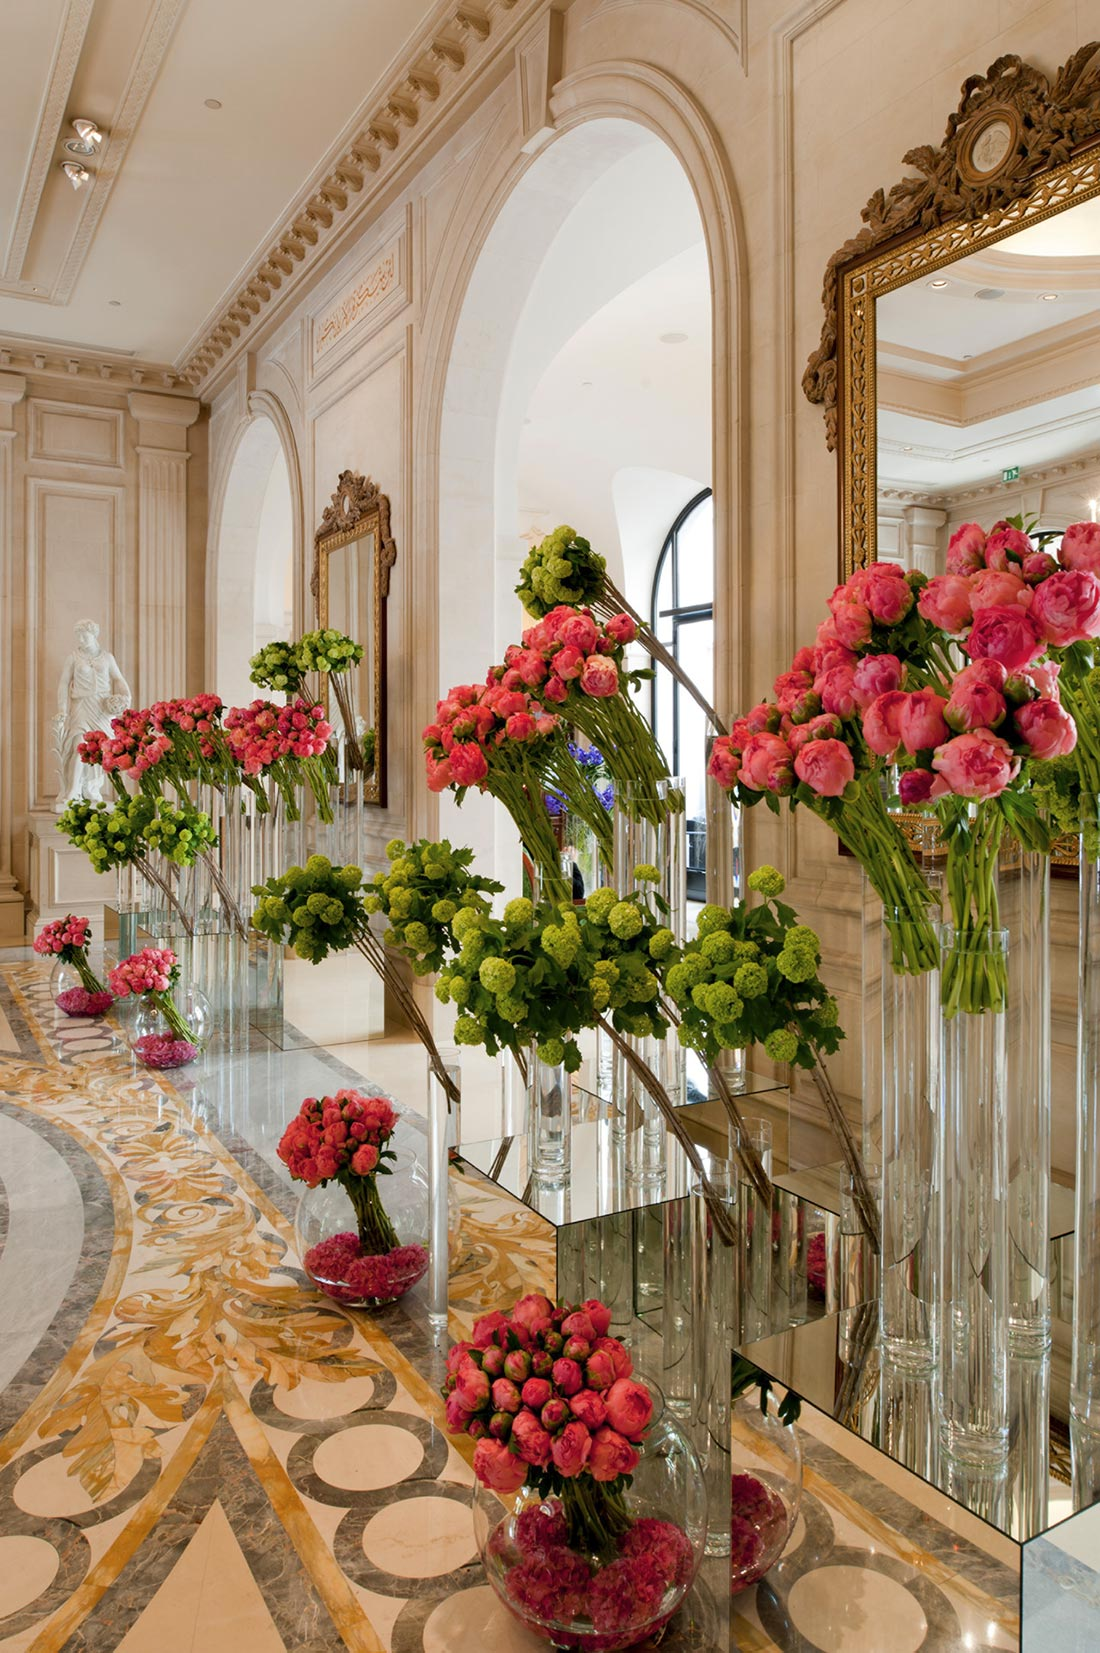 Le four seasons hotel georges v la quintessence du luxe for Decor hotel feira